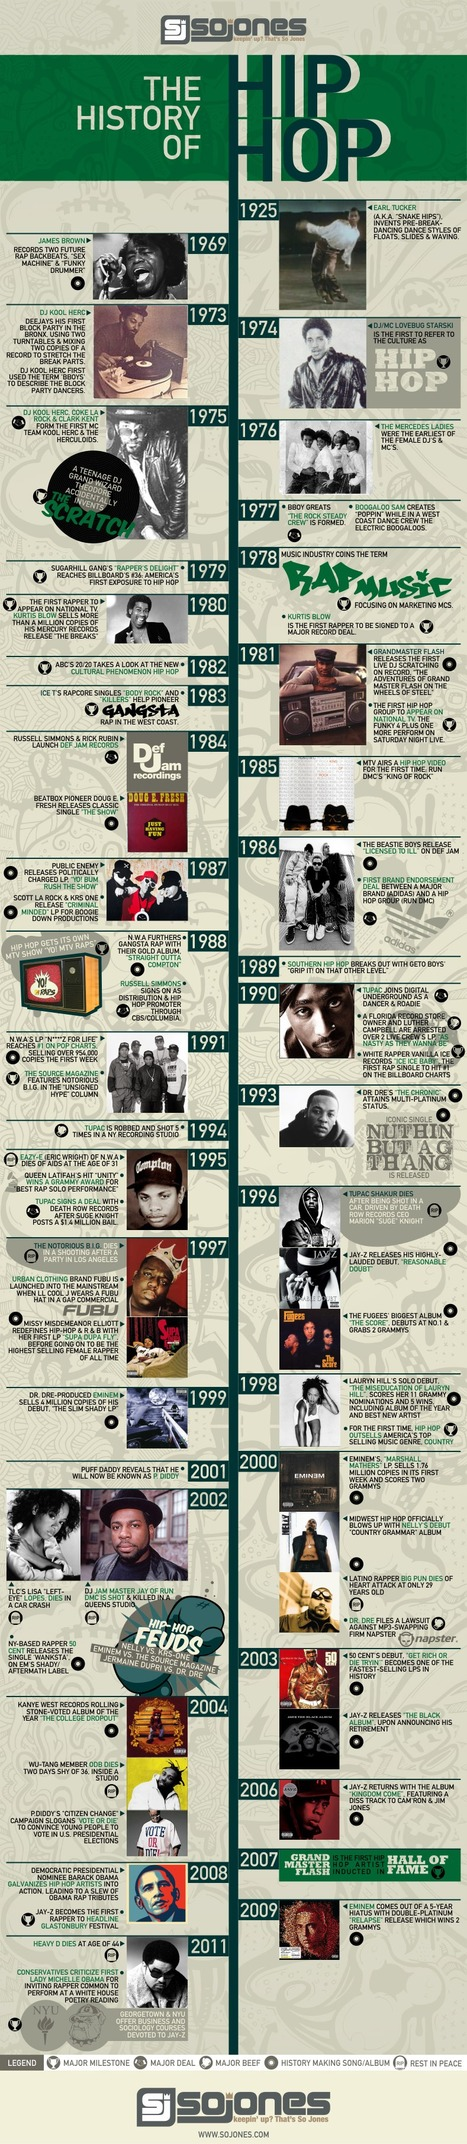 The Ultimate History of Hip Hop | Music and entertainment Magazine Publication predominantly features R&B and hip-hop music artists, actors and other entertainers. | Scoop.it